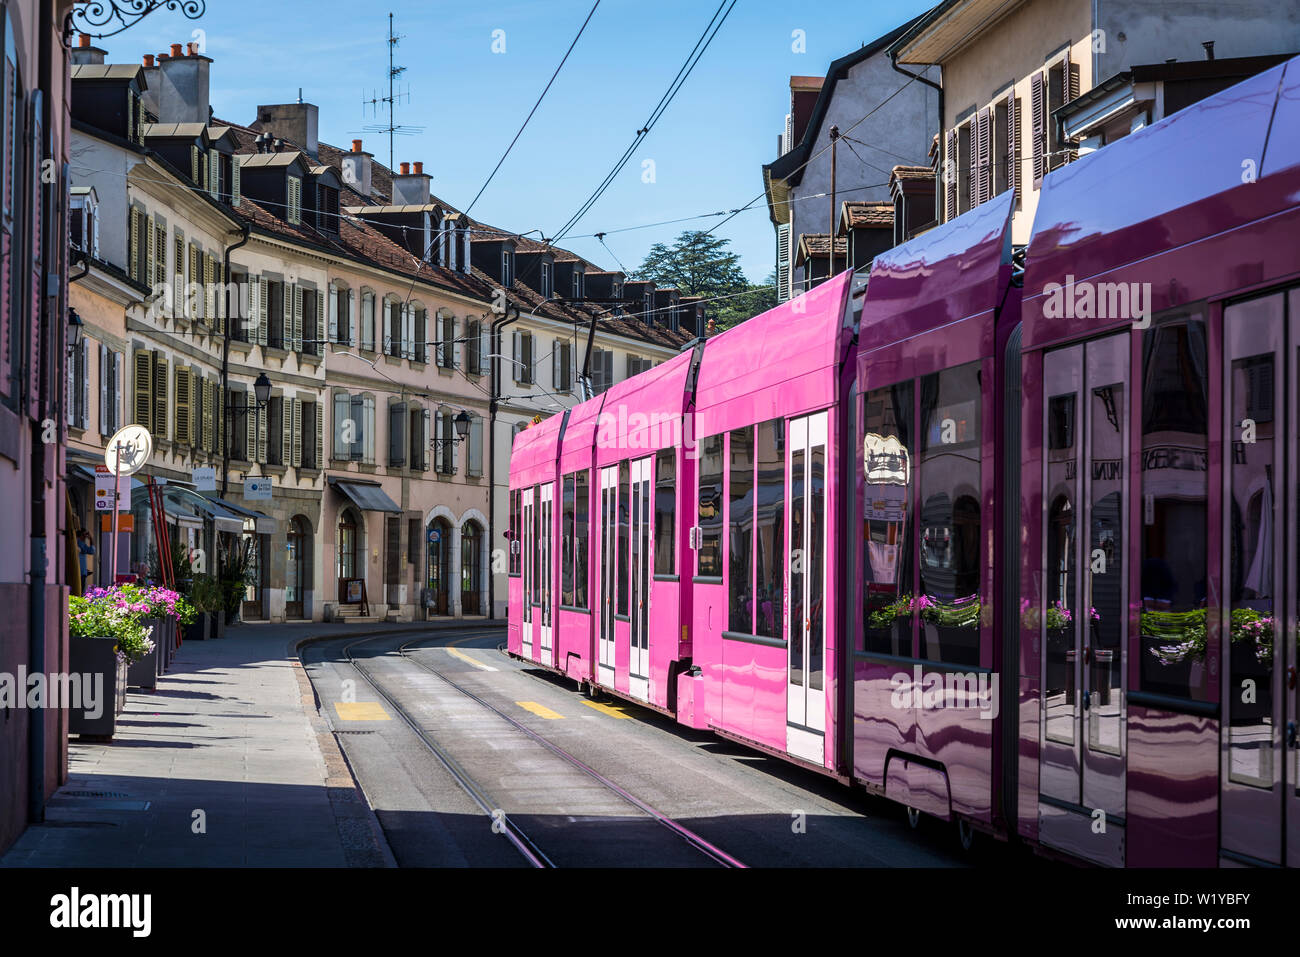 Tram passing through a typical street with  French-Italian architecture in the Carouge district, a Mediterranean style district modelled after Nice, G Stock Photo